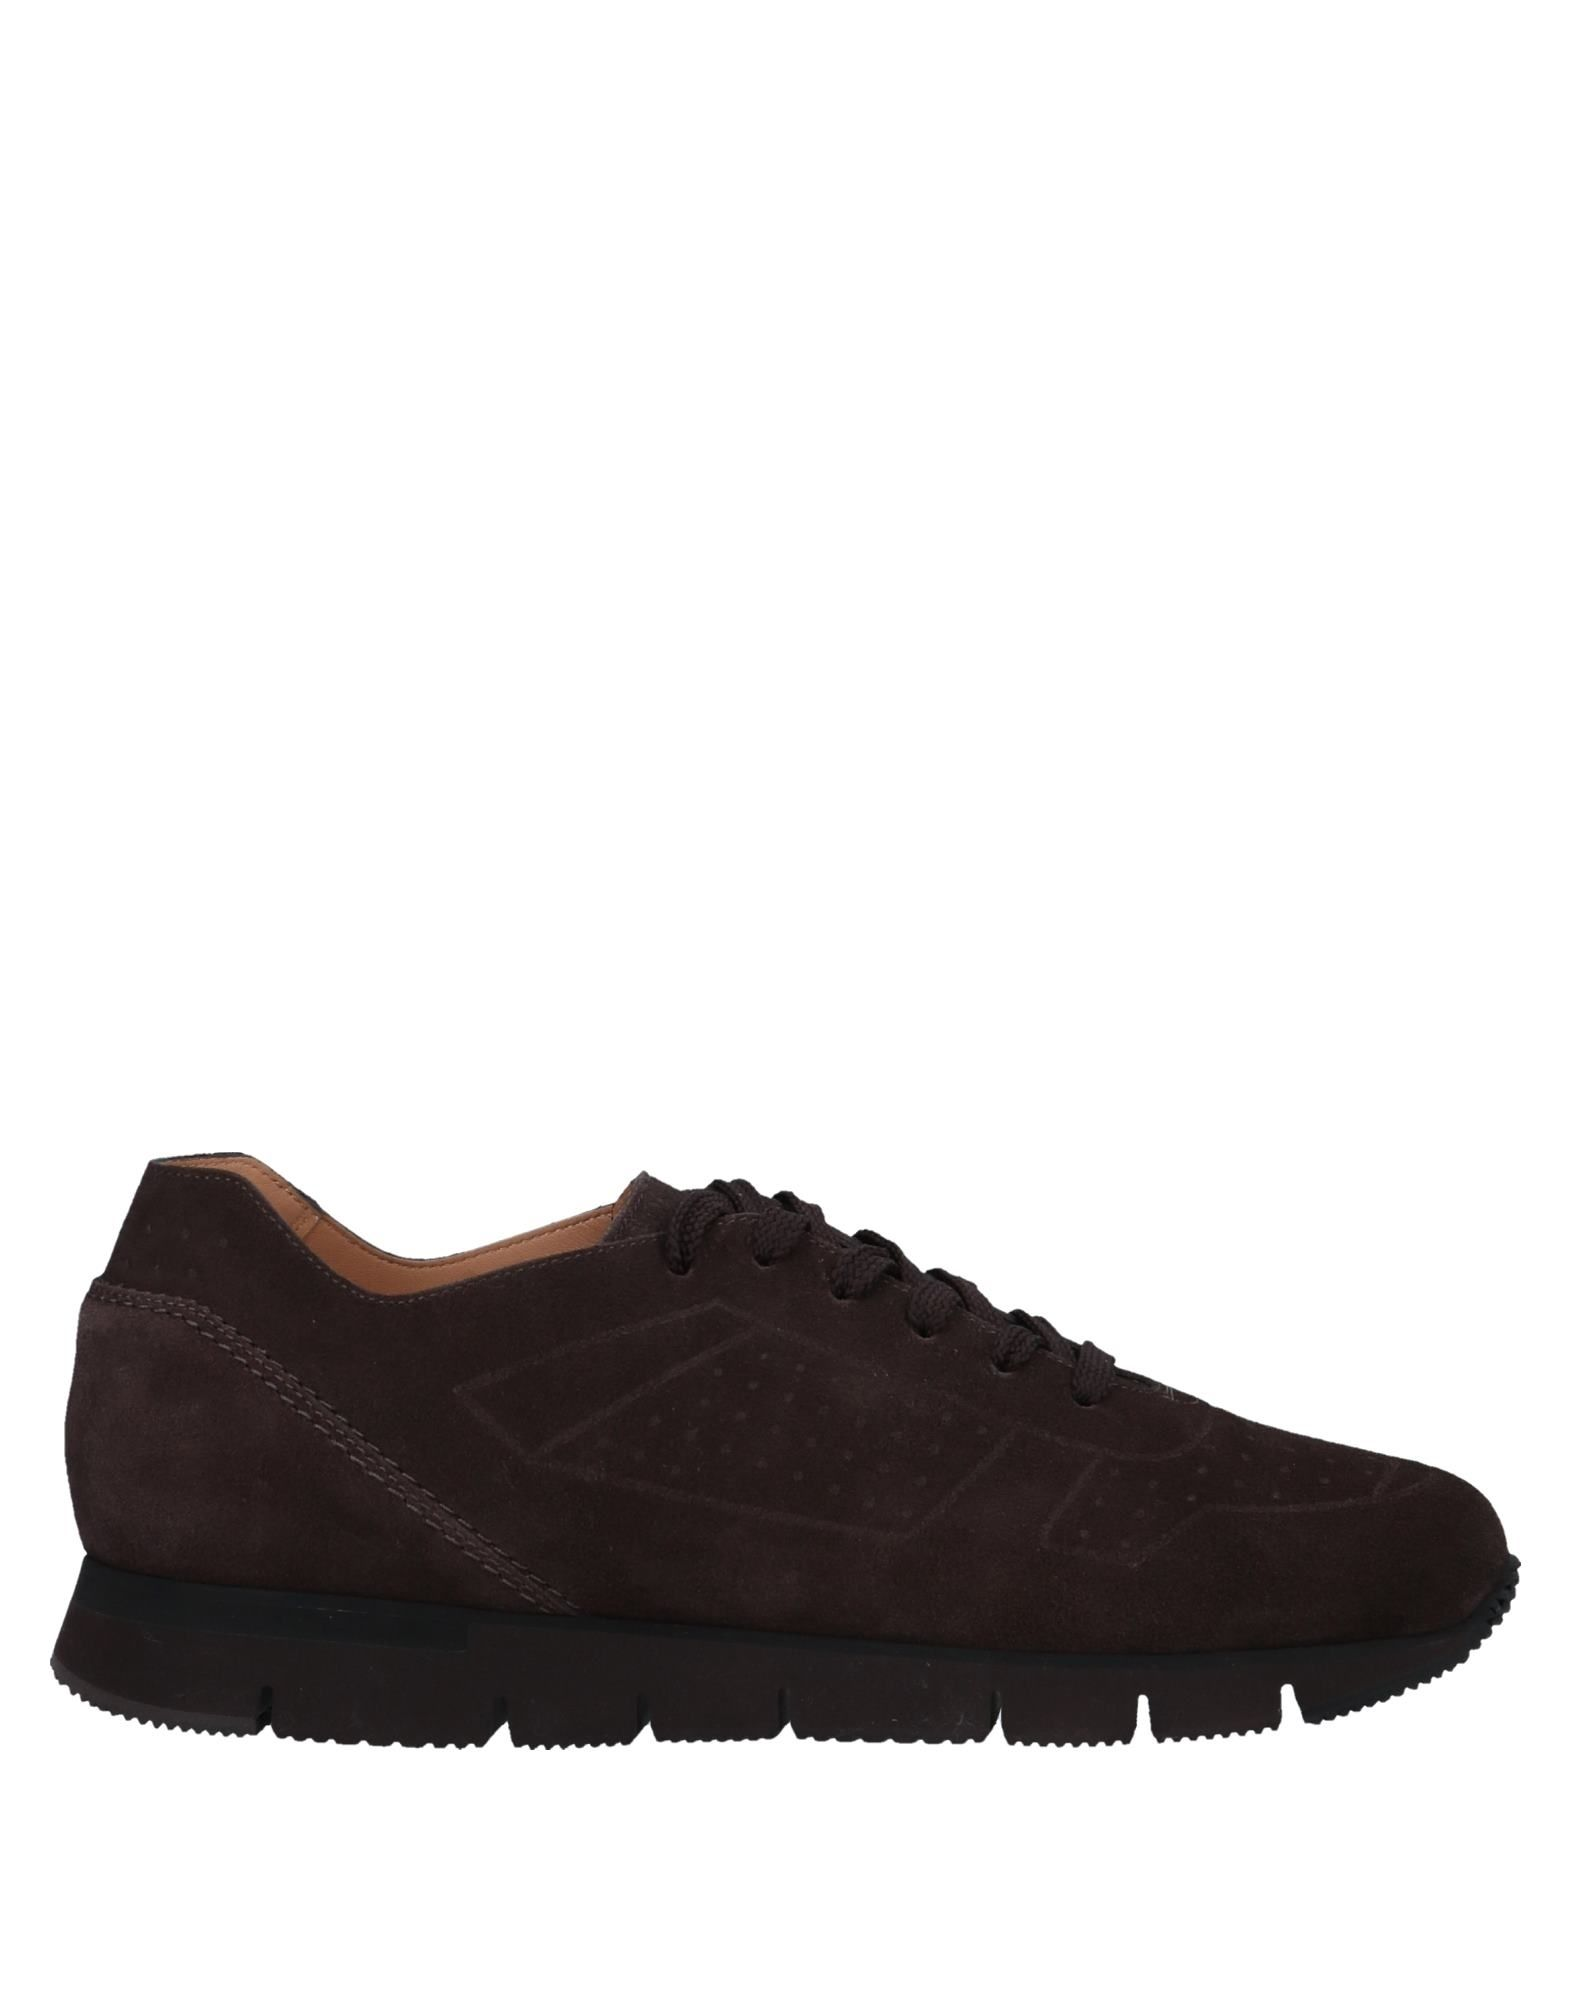 Sneakers Santoni Uomo - 11541291UK elegante